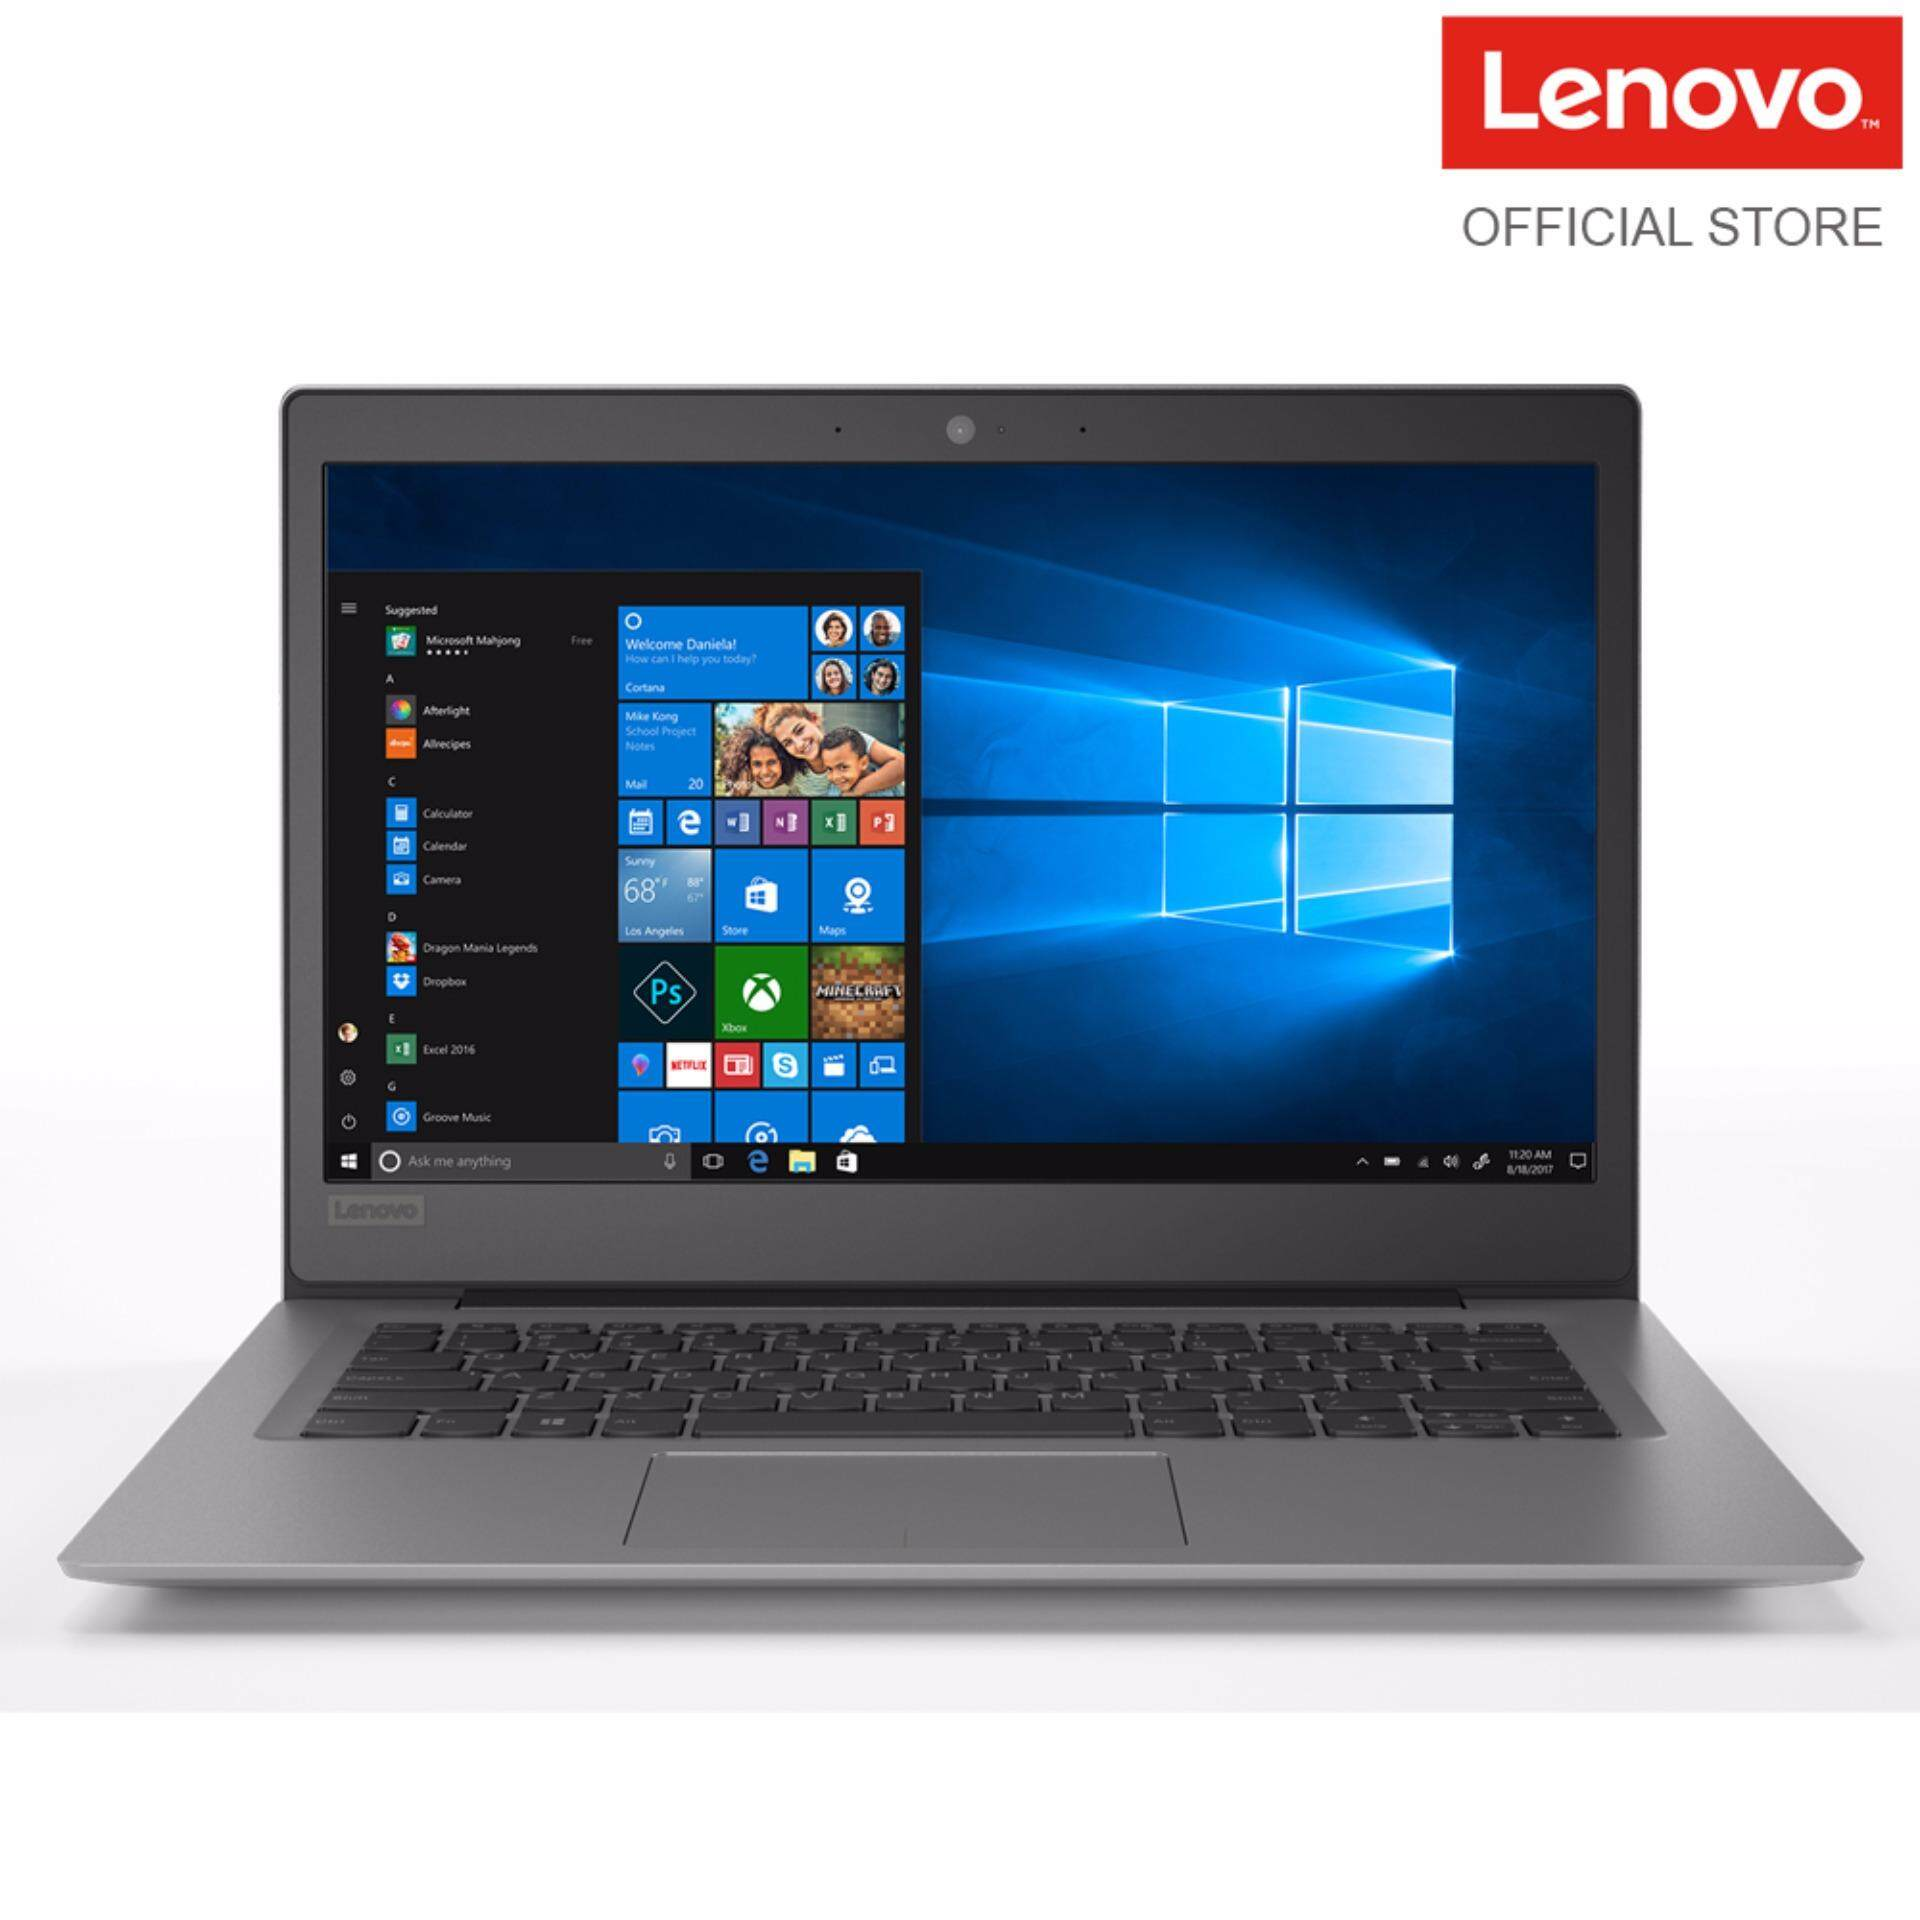 Lenovo IdeaPad 120S-11IAP 11 Laptop 81A400ALMJ (Intel® Celeron® N3350 Processor) - Denim Blue Malaysia